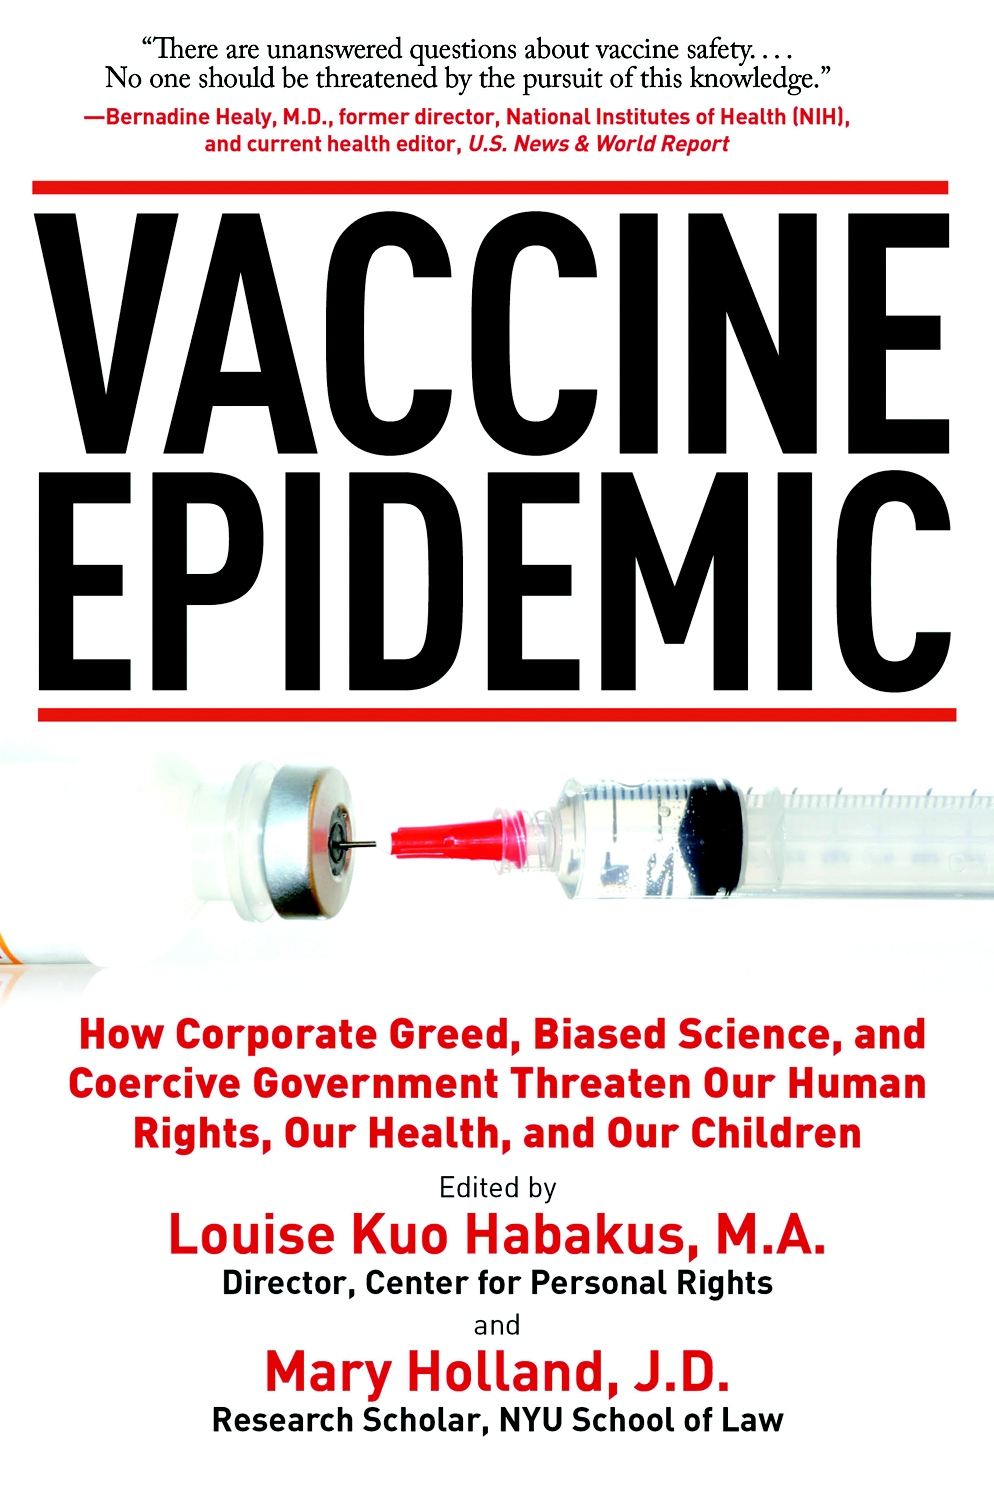 Vaccine Epidemic: How Corporate Greed, Biased Science, and Coercive Government Threaten Our Human Rights, Our Health, and Our Children By: Louise Kuo Habakus, Mary Holland